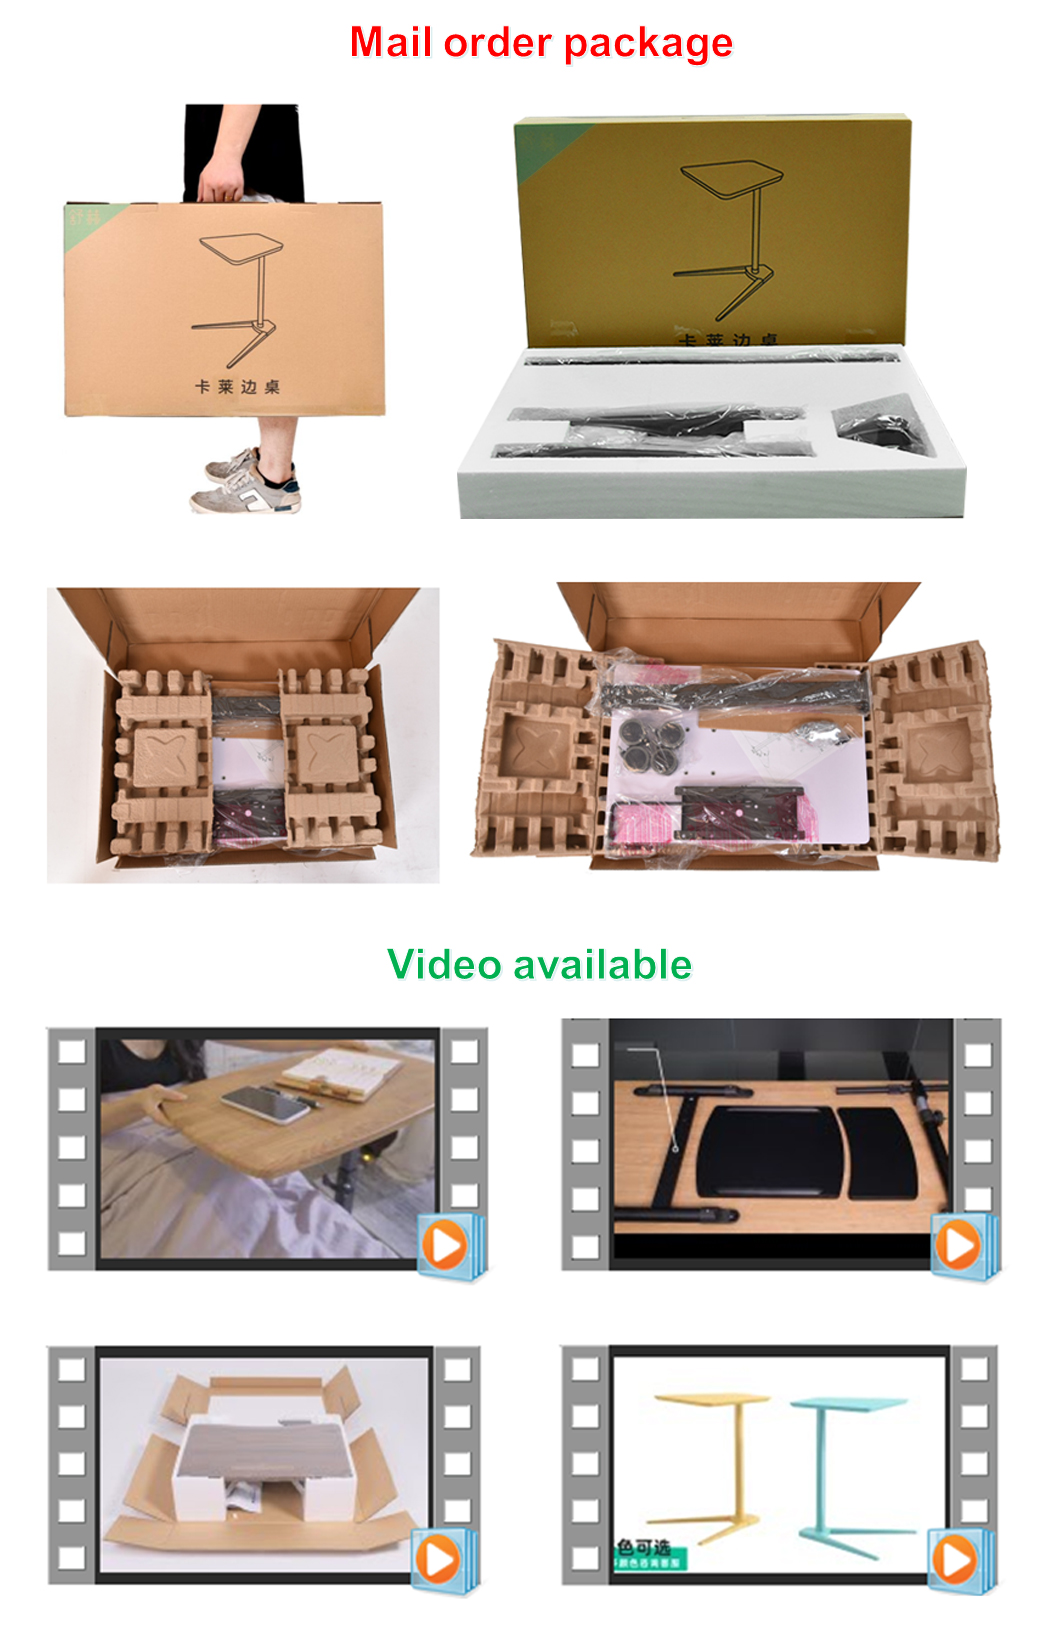 Mail Order Package And Video For Laptop Desk